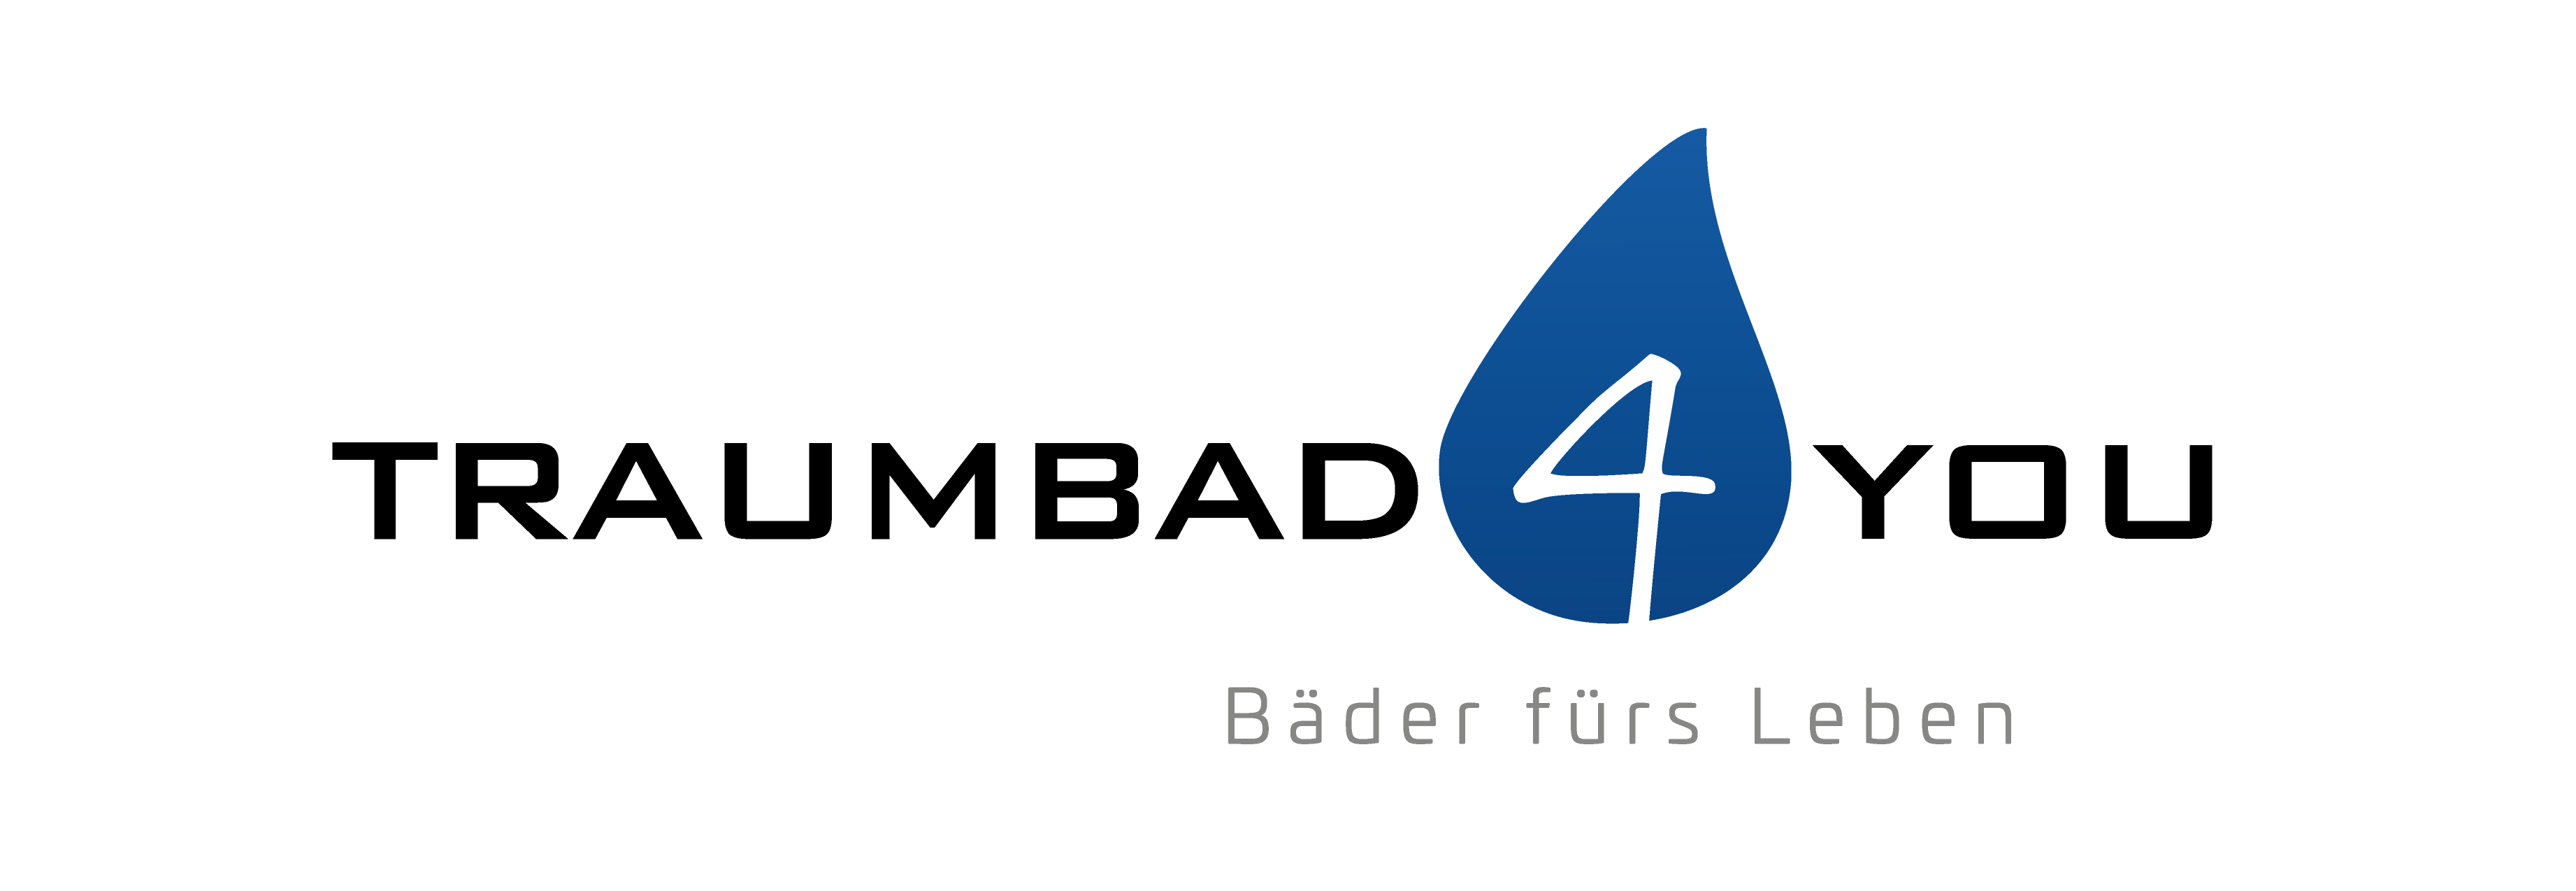 Traumbad4you Lebensart GmbH Logo